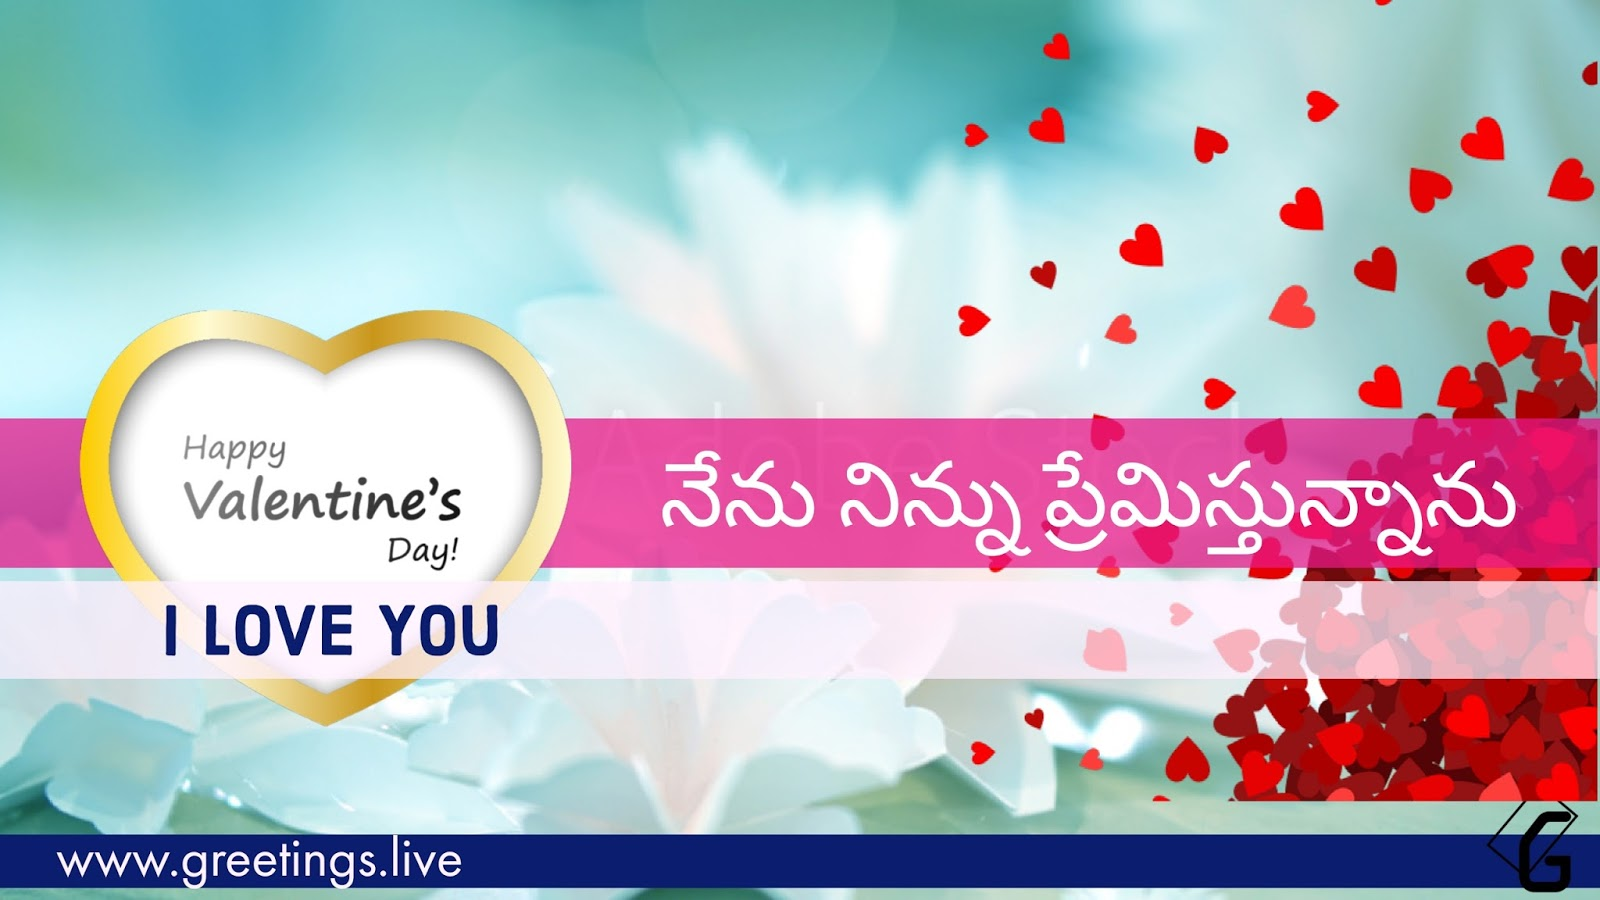 Greetingsve hd images love smile birthday wishes free download i love you in telugu love greetings with love symbol kristyandbryce Image collections